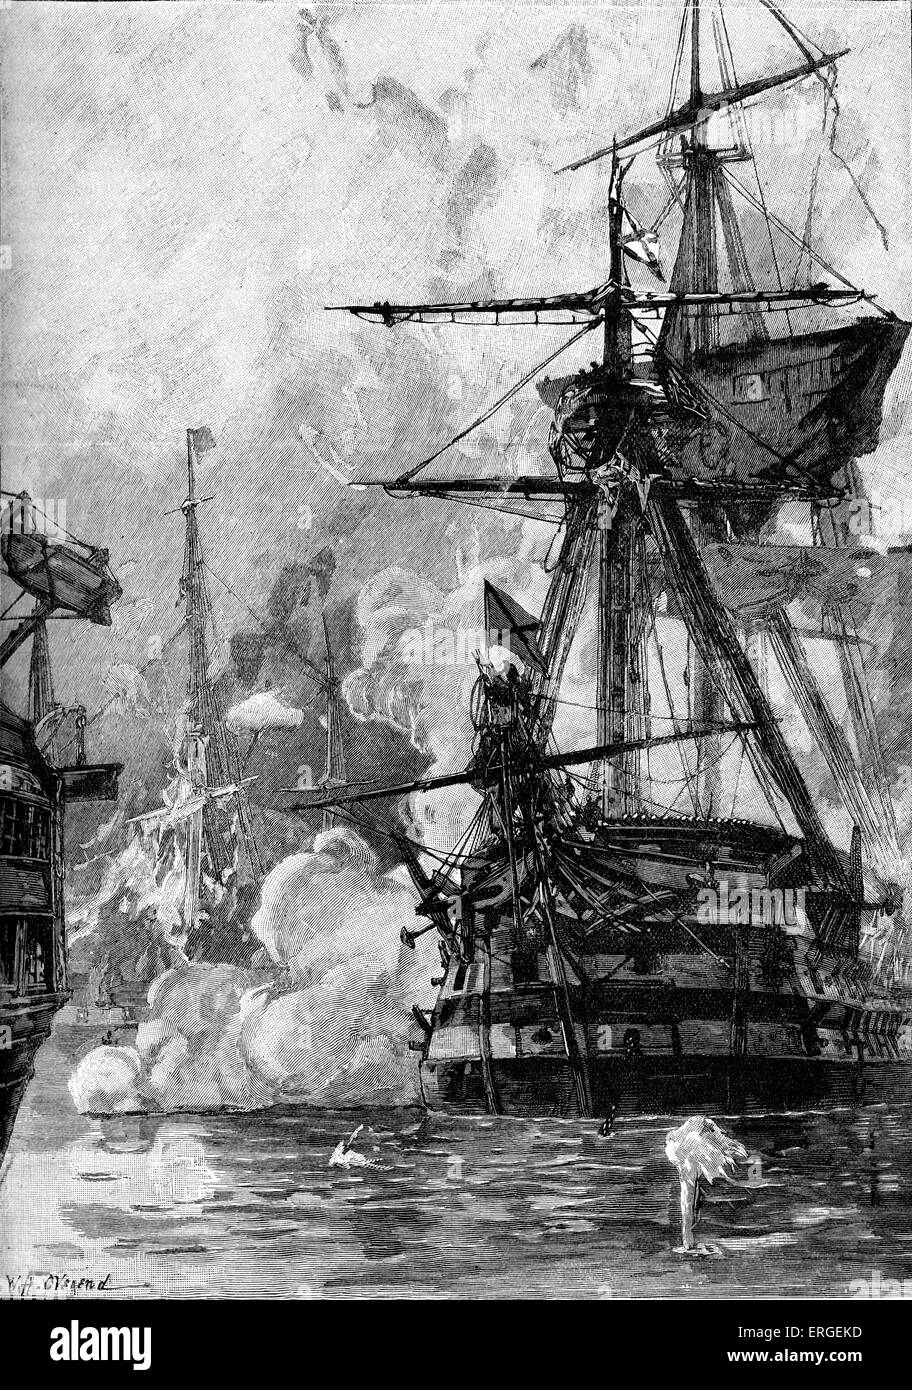 Battle of Sinop, 30 November 1853. Imperial Russian war ships attacked and destroyed patrol force of Ottoman ships - Stock Image